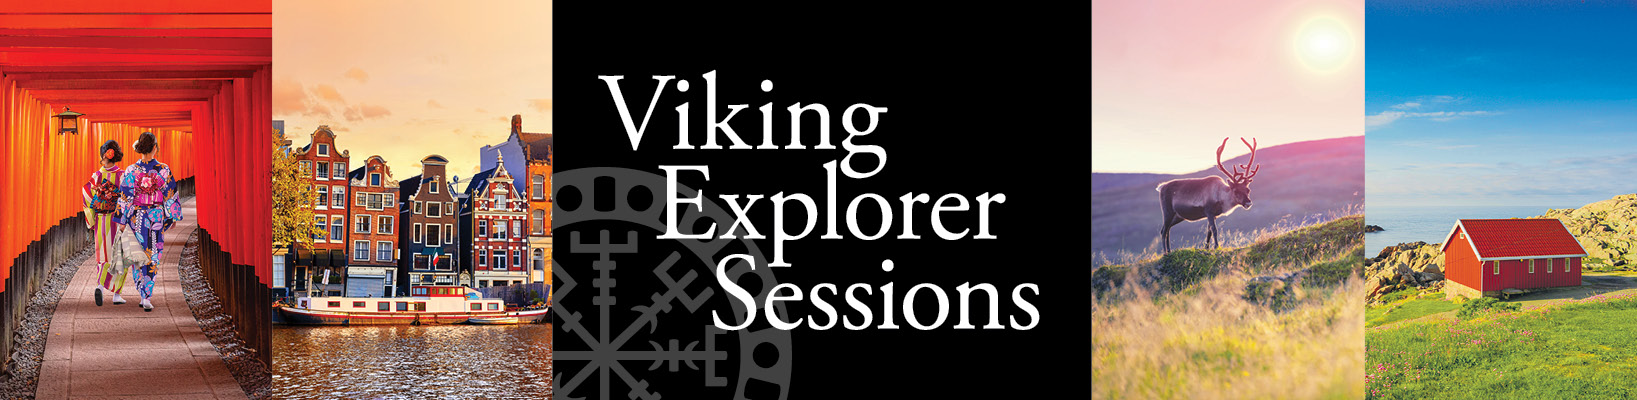 Viking Information Sessions